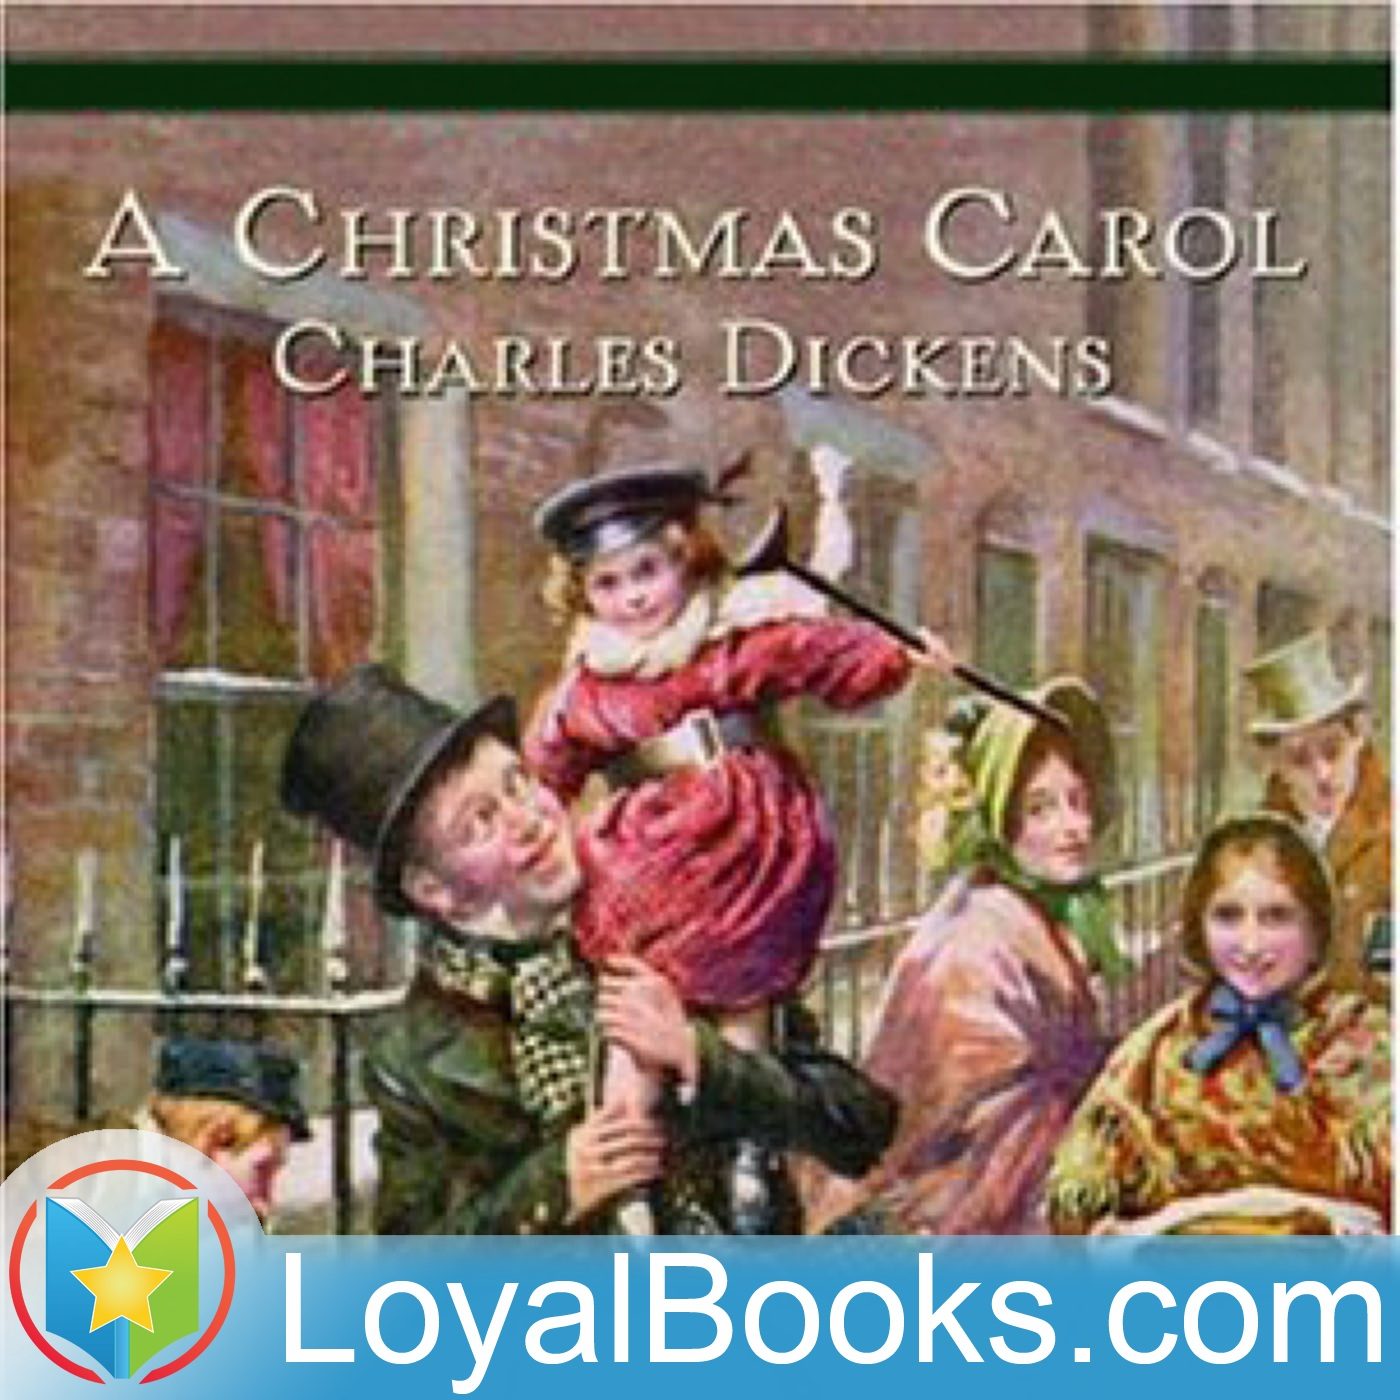 scrooge in the novel a christmas carol Charles dickens' novel, a christmas carol (1843), is the famous redemption tale of the wicked ebenezer scrooge on christmas eve, scrooge is visited by spirits, including his former business partner jacob marley, and the ghosts of christmas past, christmas present and christmas yet to come.